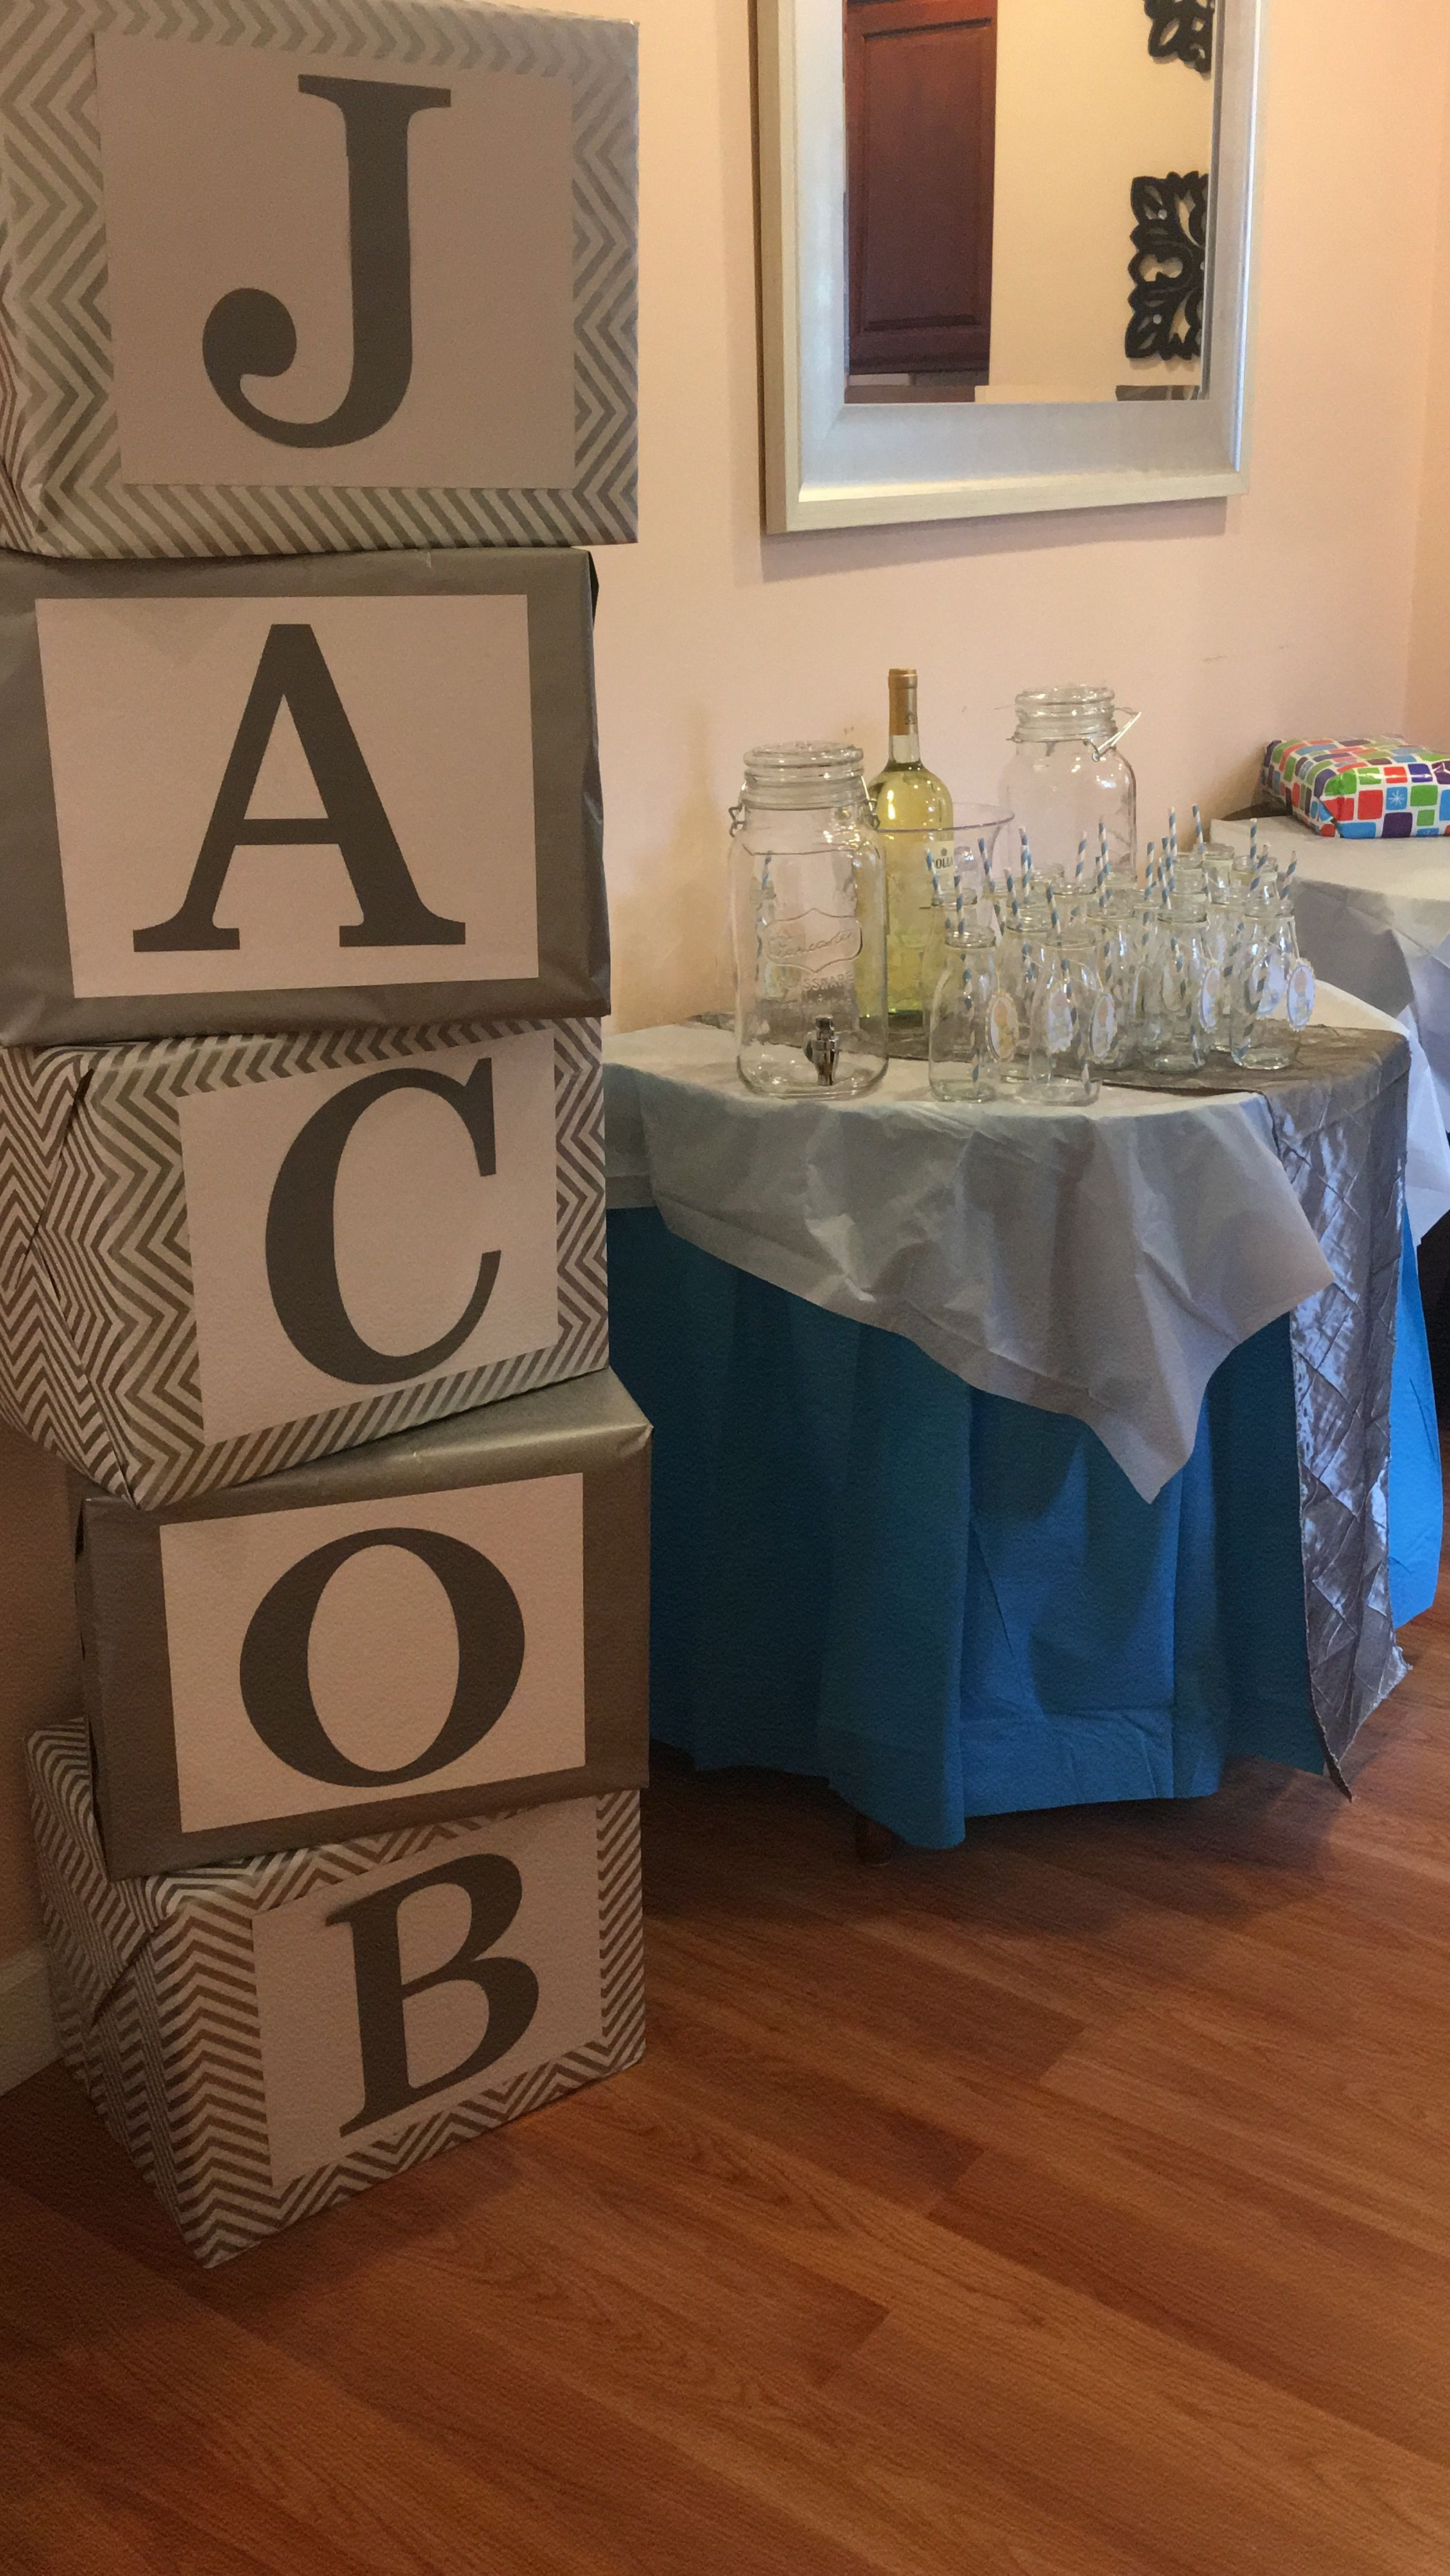 How To Make Baby Shower Boxes With Name : shower, boxes, Shower, Blocks, Shower,, Trendy, Ideas,